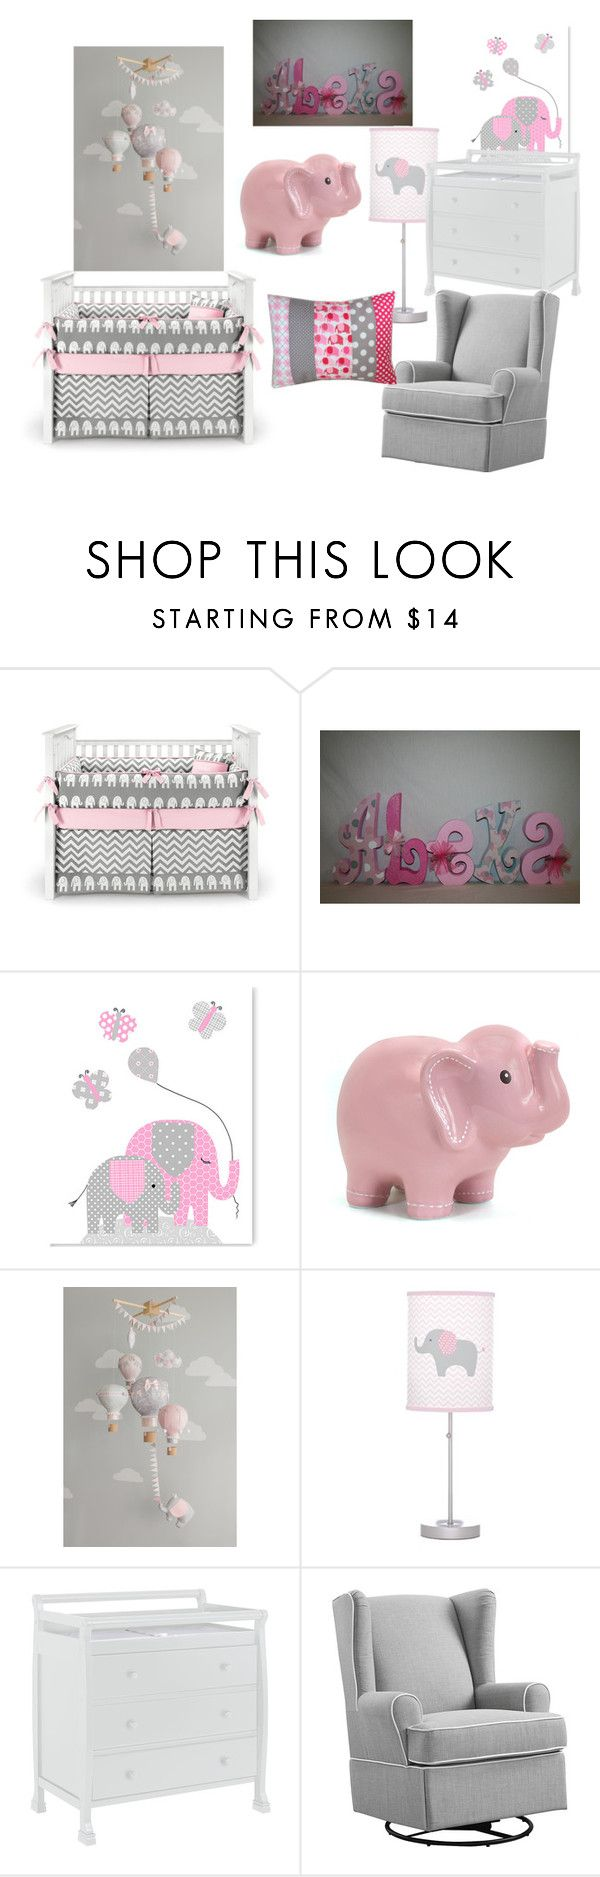 """Pink and gray elephant nursery"" by karaaltomare on Polyvore featuring interior, interiors, interior design, home, home decor, interior decorating, DaVinci and Eddie Bauer"